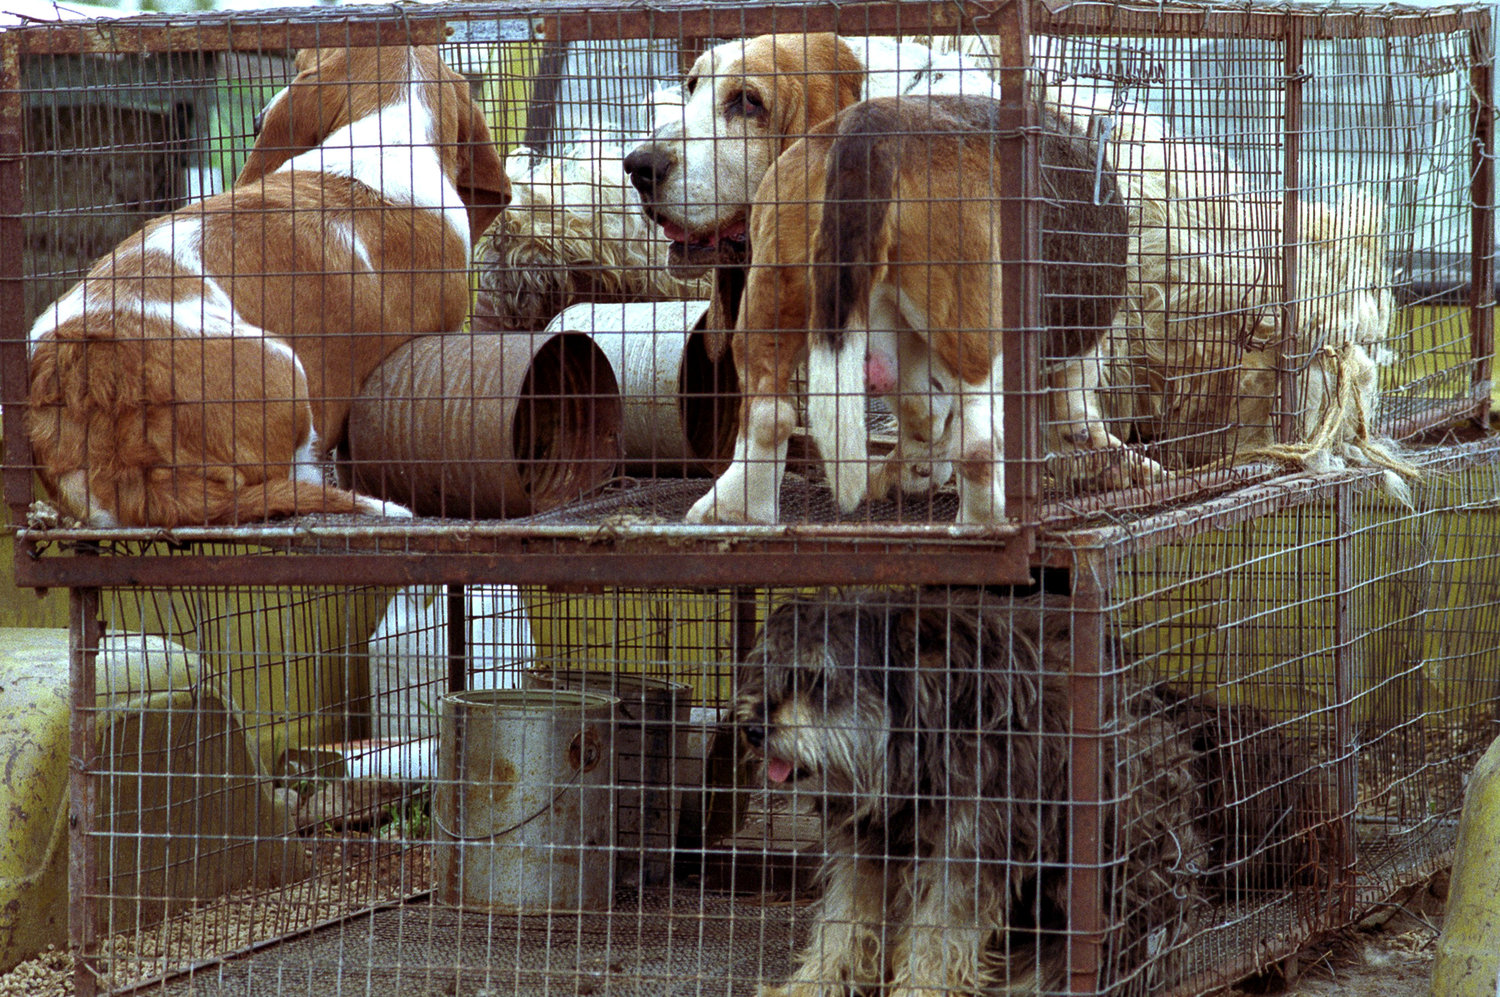 Police: 150 dogs, one dead, found at suspected puppy mill owned by